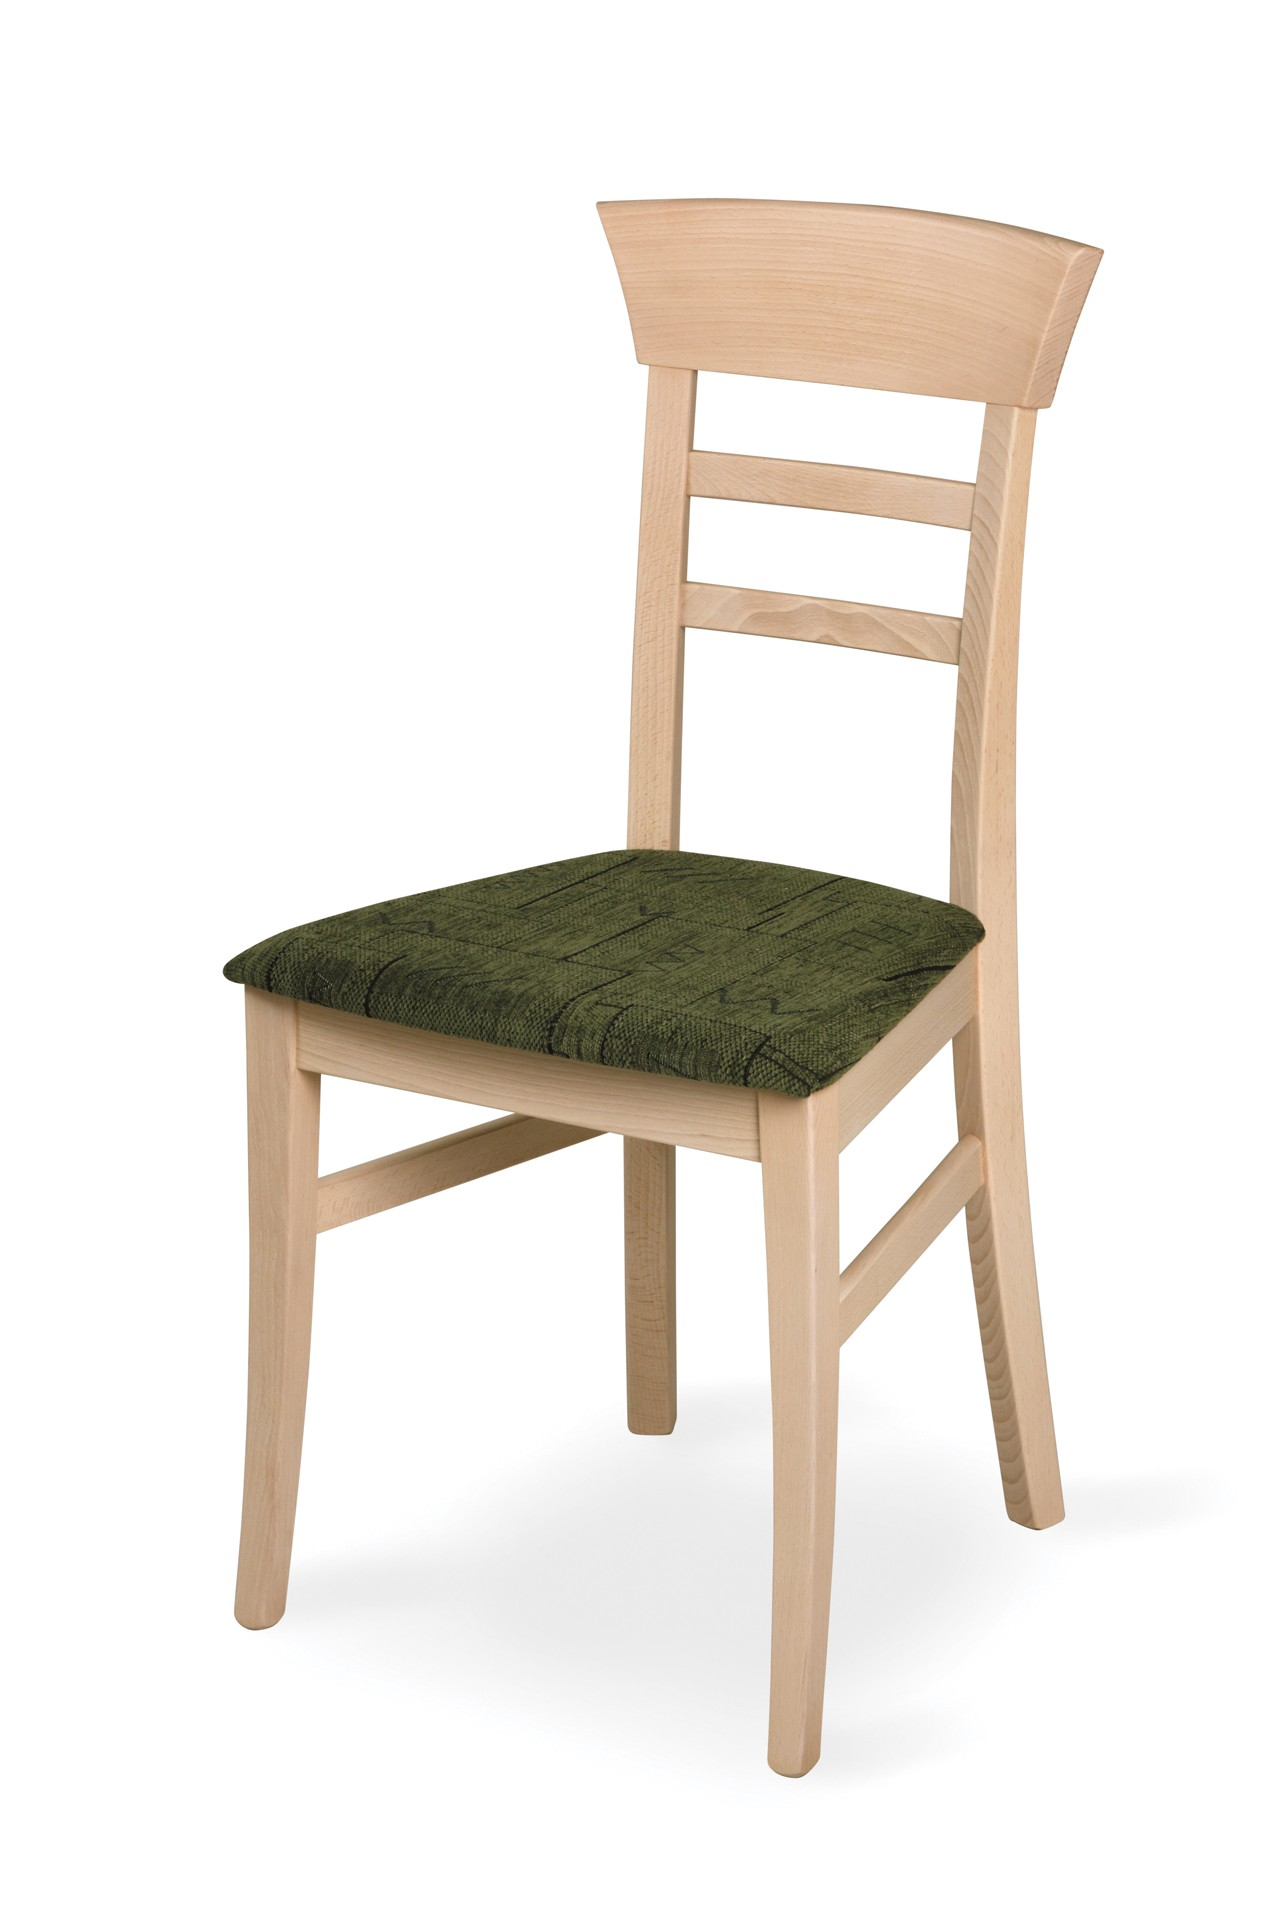 REAL CHAIR with upholstered seat